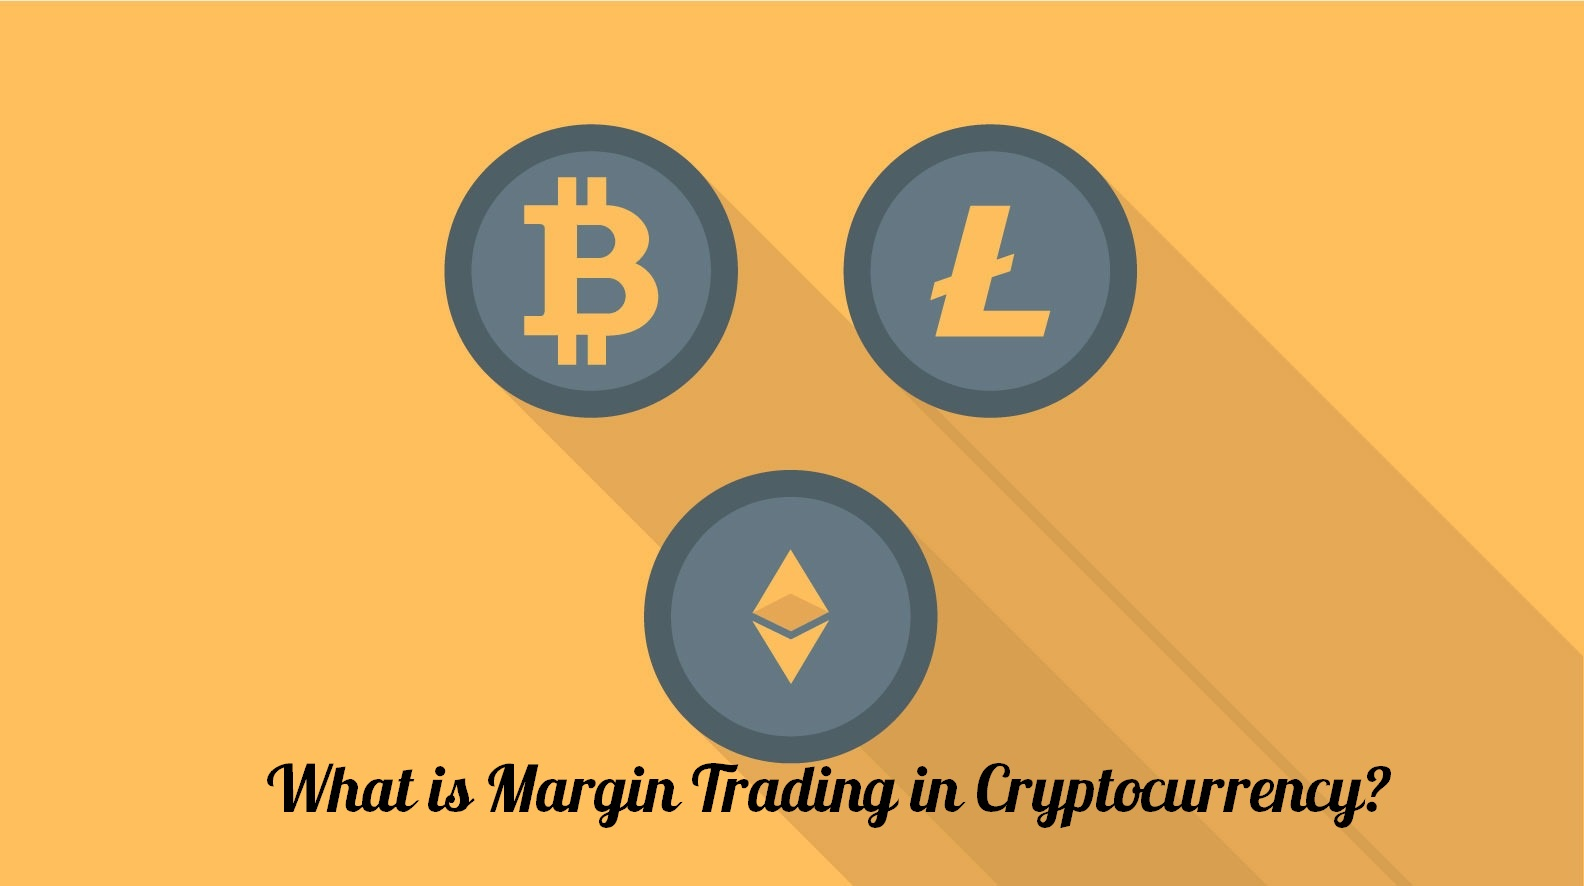 when do people do margin trading in cryptocurrencies